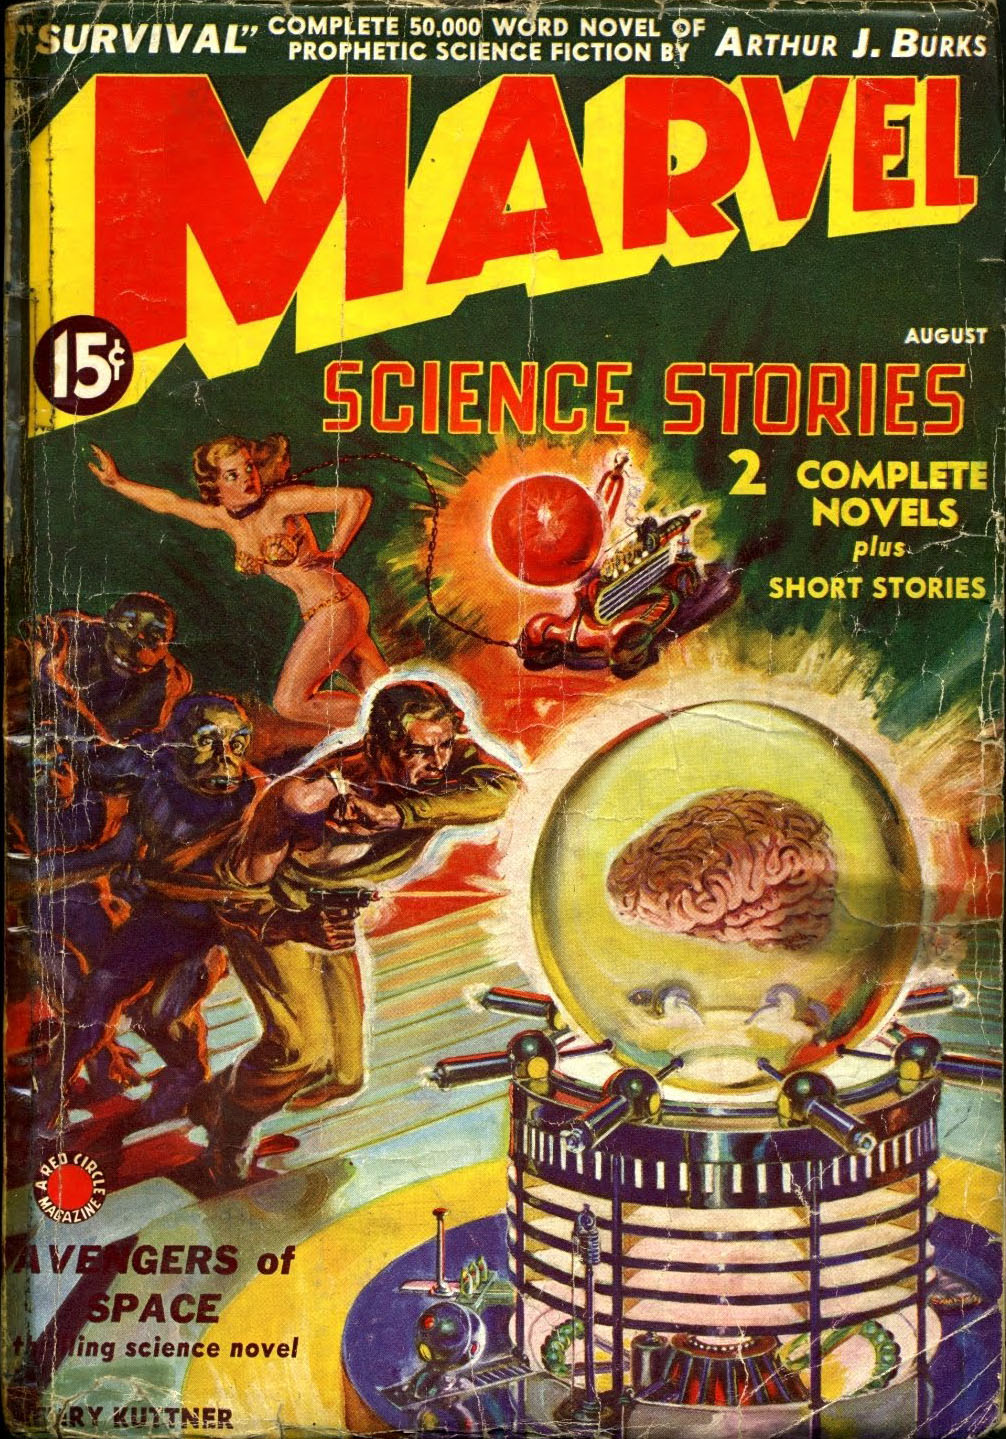 Marvel Science Stories, august 1938